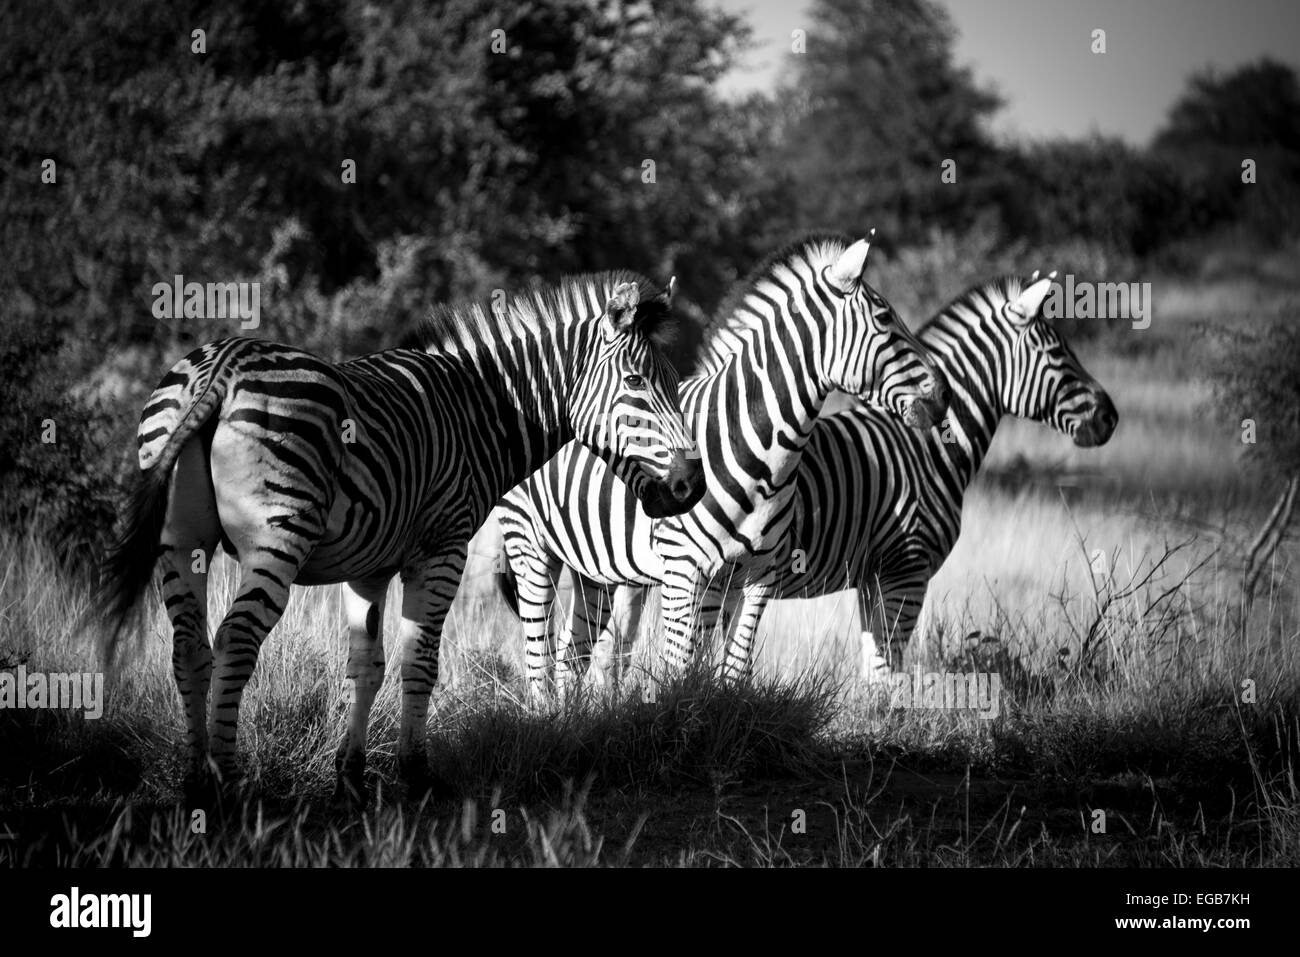 A group of three zebra basking in the evening light. - Stock Image